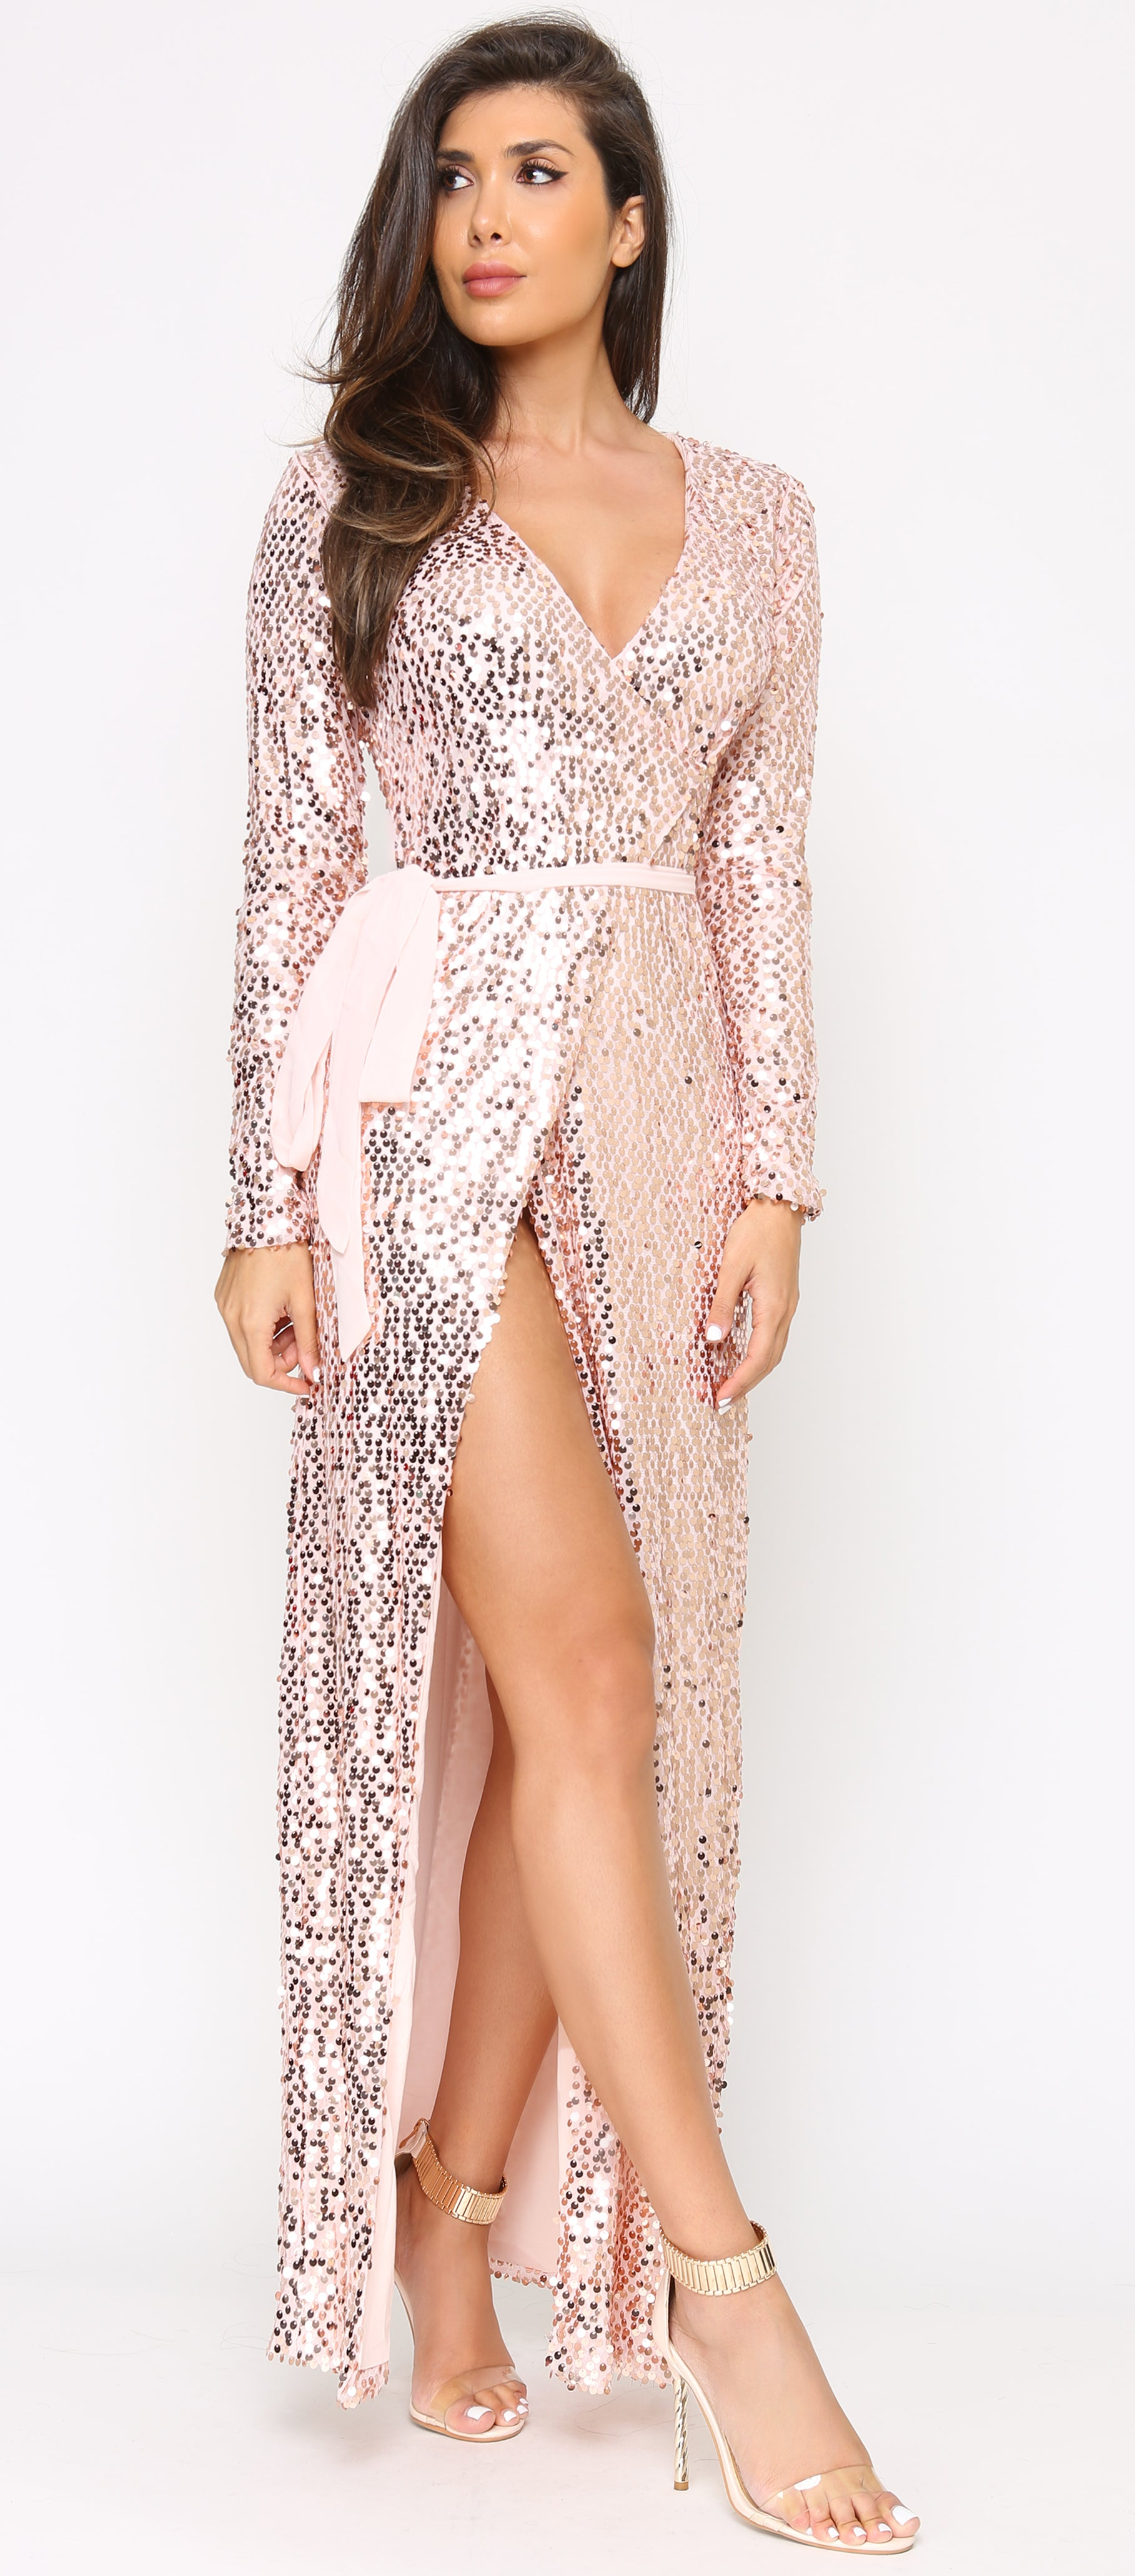 Emmeline Rose Gold Pink Belted Sequin Maxi Dress - Emprada